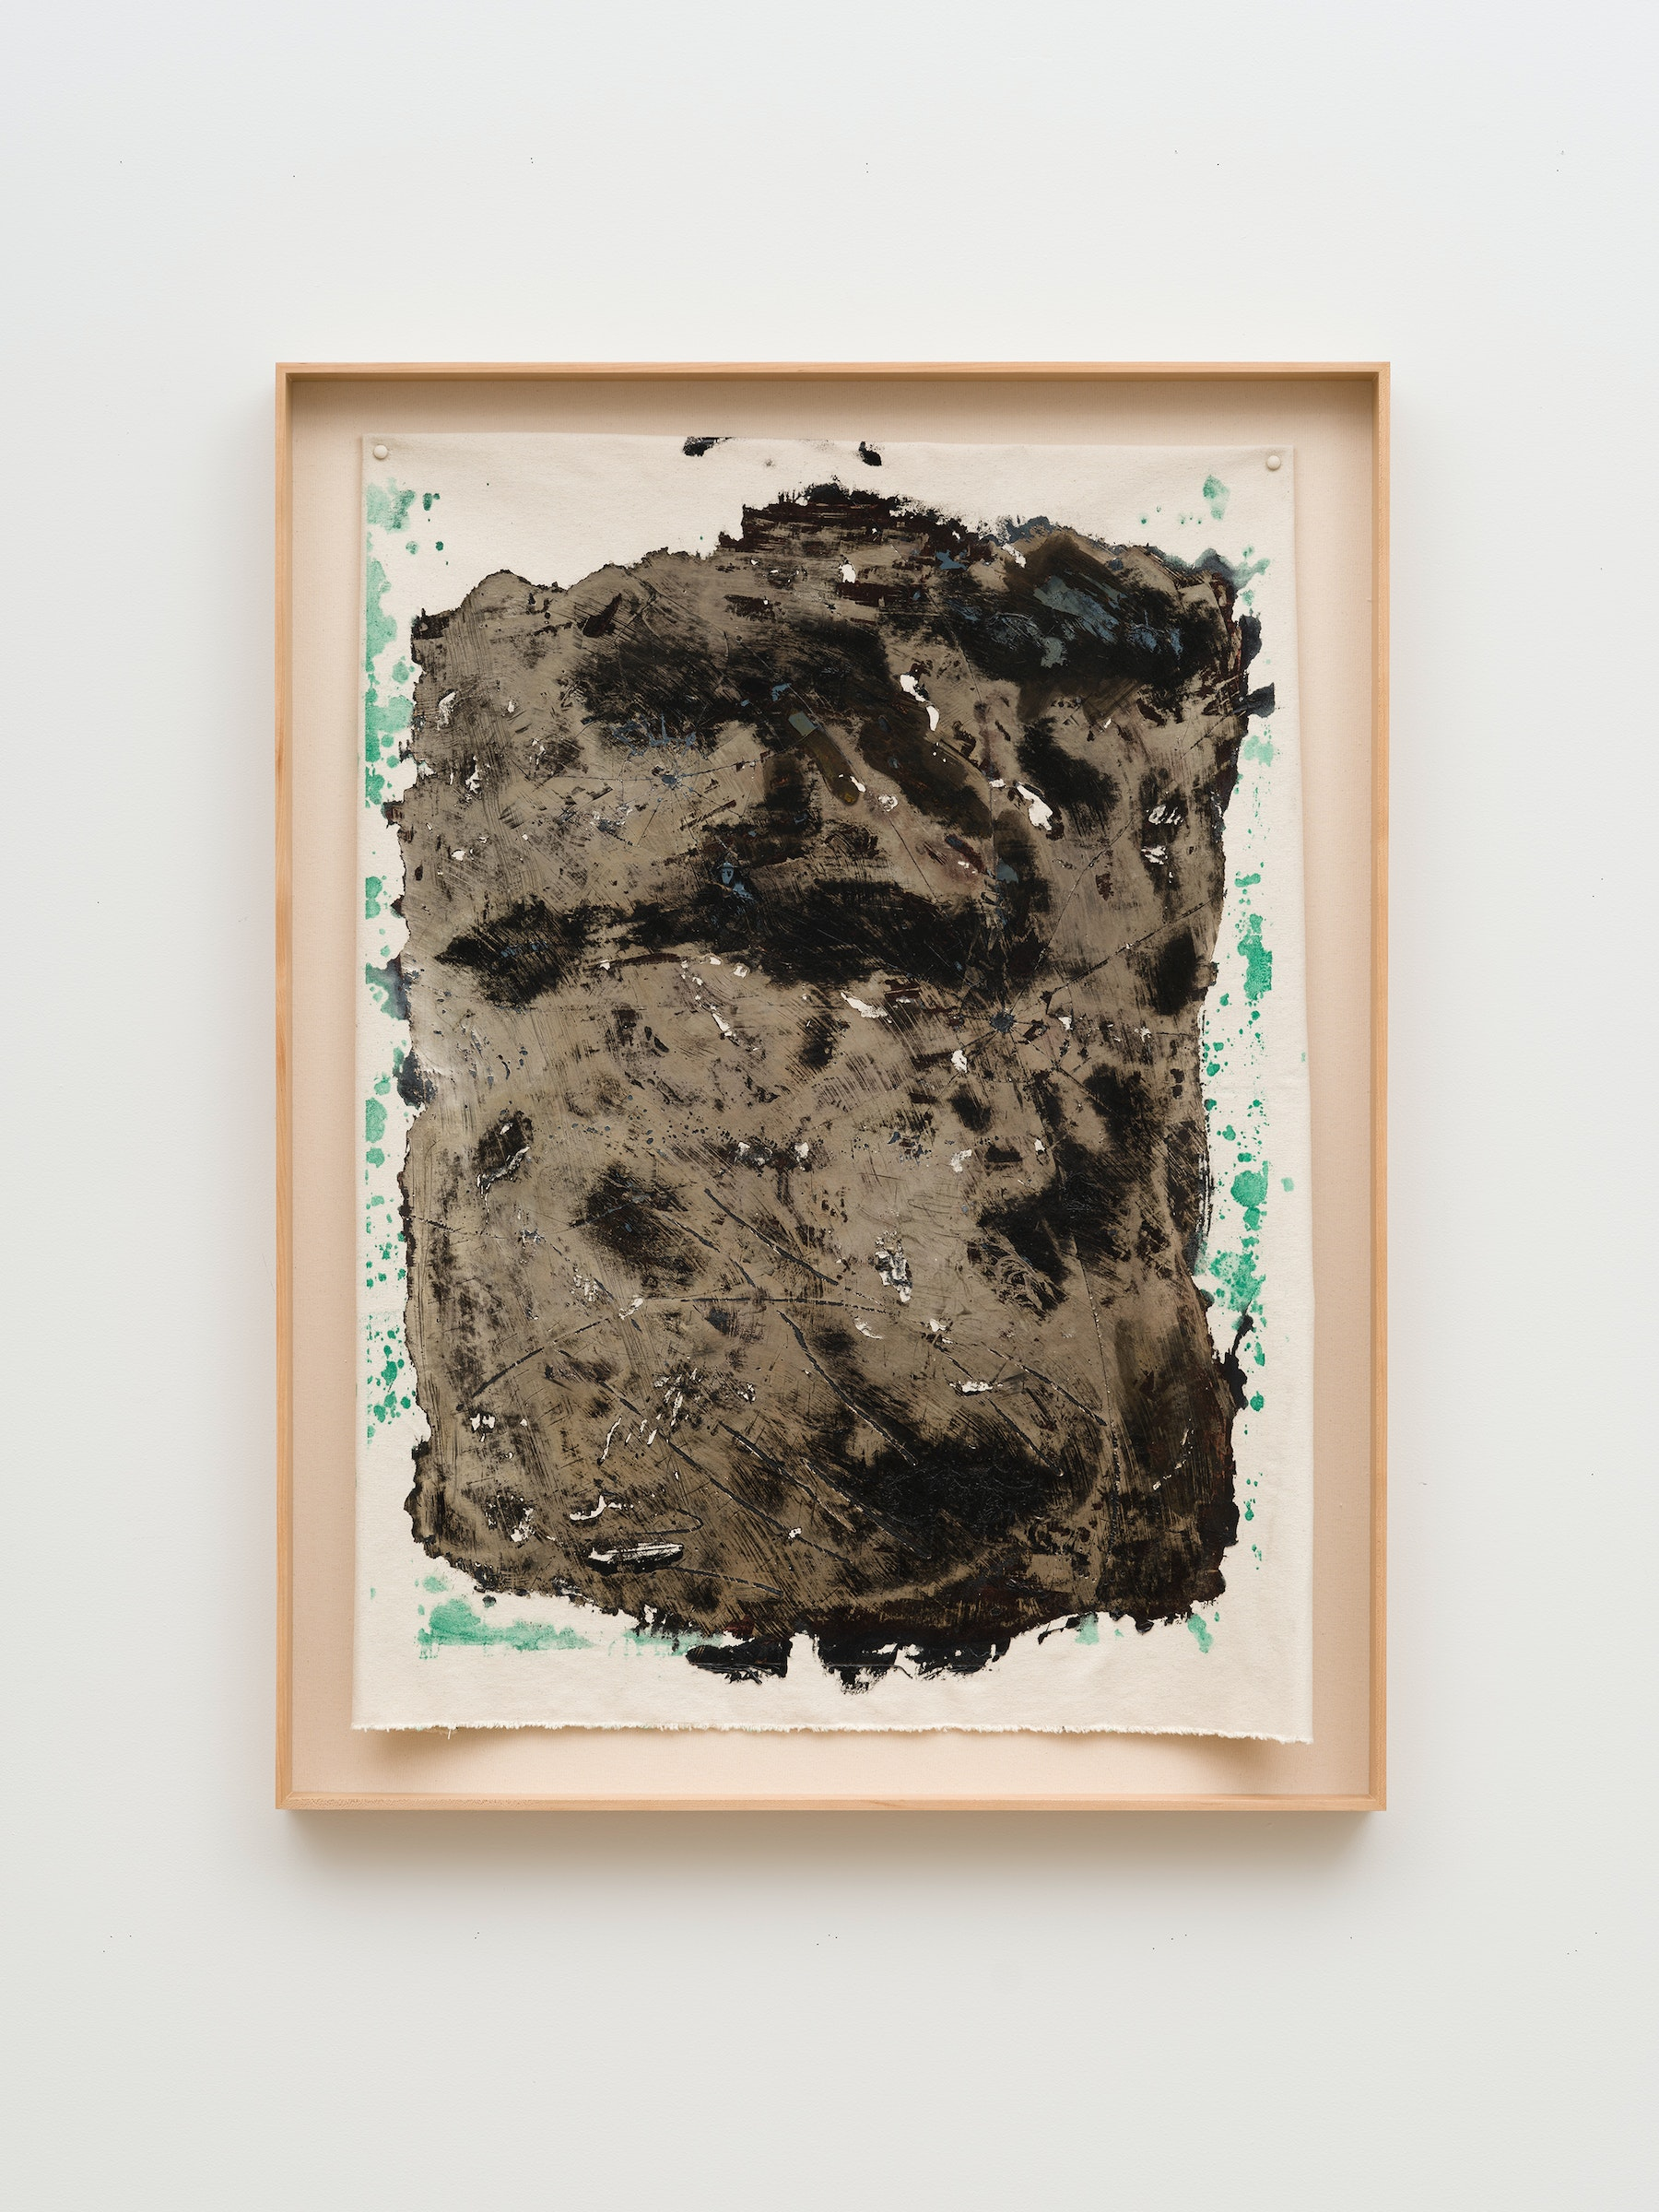 """Edgar Arceneaux """"Skinning the Mirror #4,"""" 2020 Silver nitrate, acrylic paint on canvas 48 ³⁄₄"""" x 37 ¹⁄₂"""" x 2 ³⁄₄"""" [HxWxD] (123.82 x 95.25 x 6.98 cm) framed; 40"""" x 33"""" [HxW] (101.6 x 83.82 cm) unframed Inventory #ARC637 Courtesy of the artist and Vielmetter Los Angeles Photo credit: Jeff McLane / Xiaoyue Zhang"""